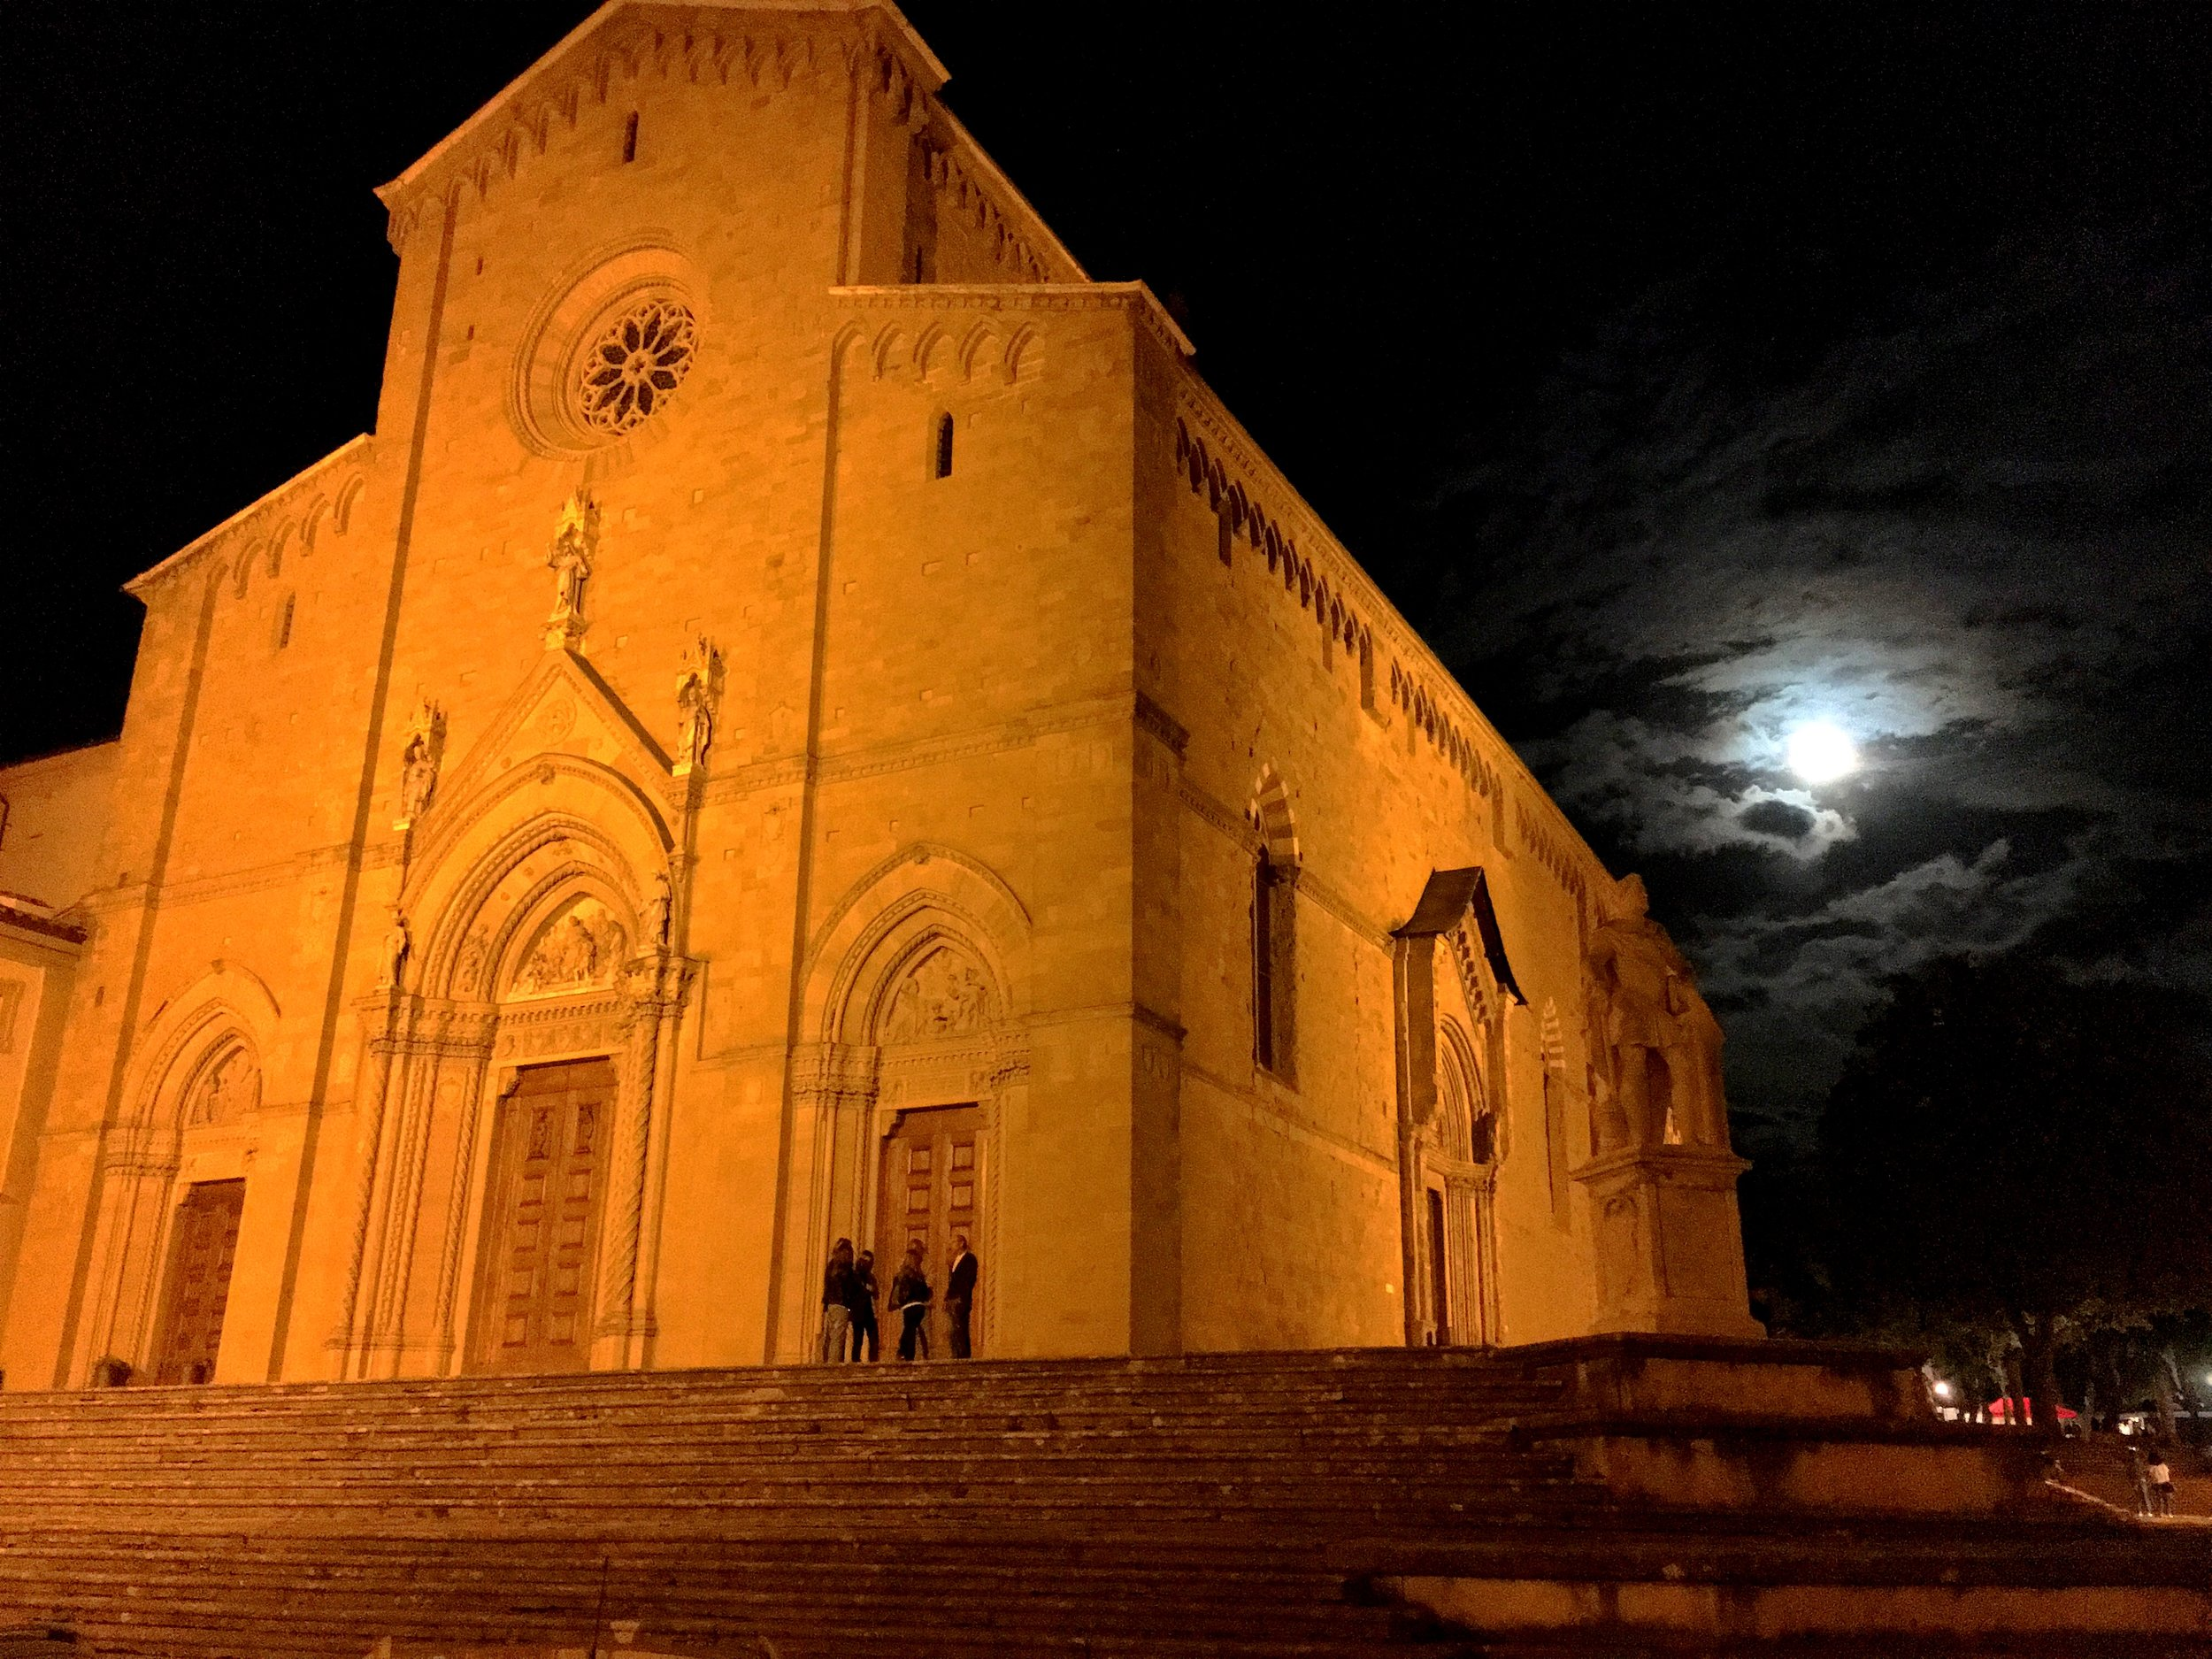 A nocturnal view of the Duomo of Arezzo